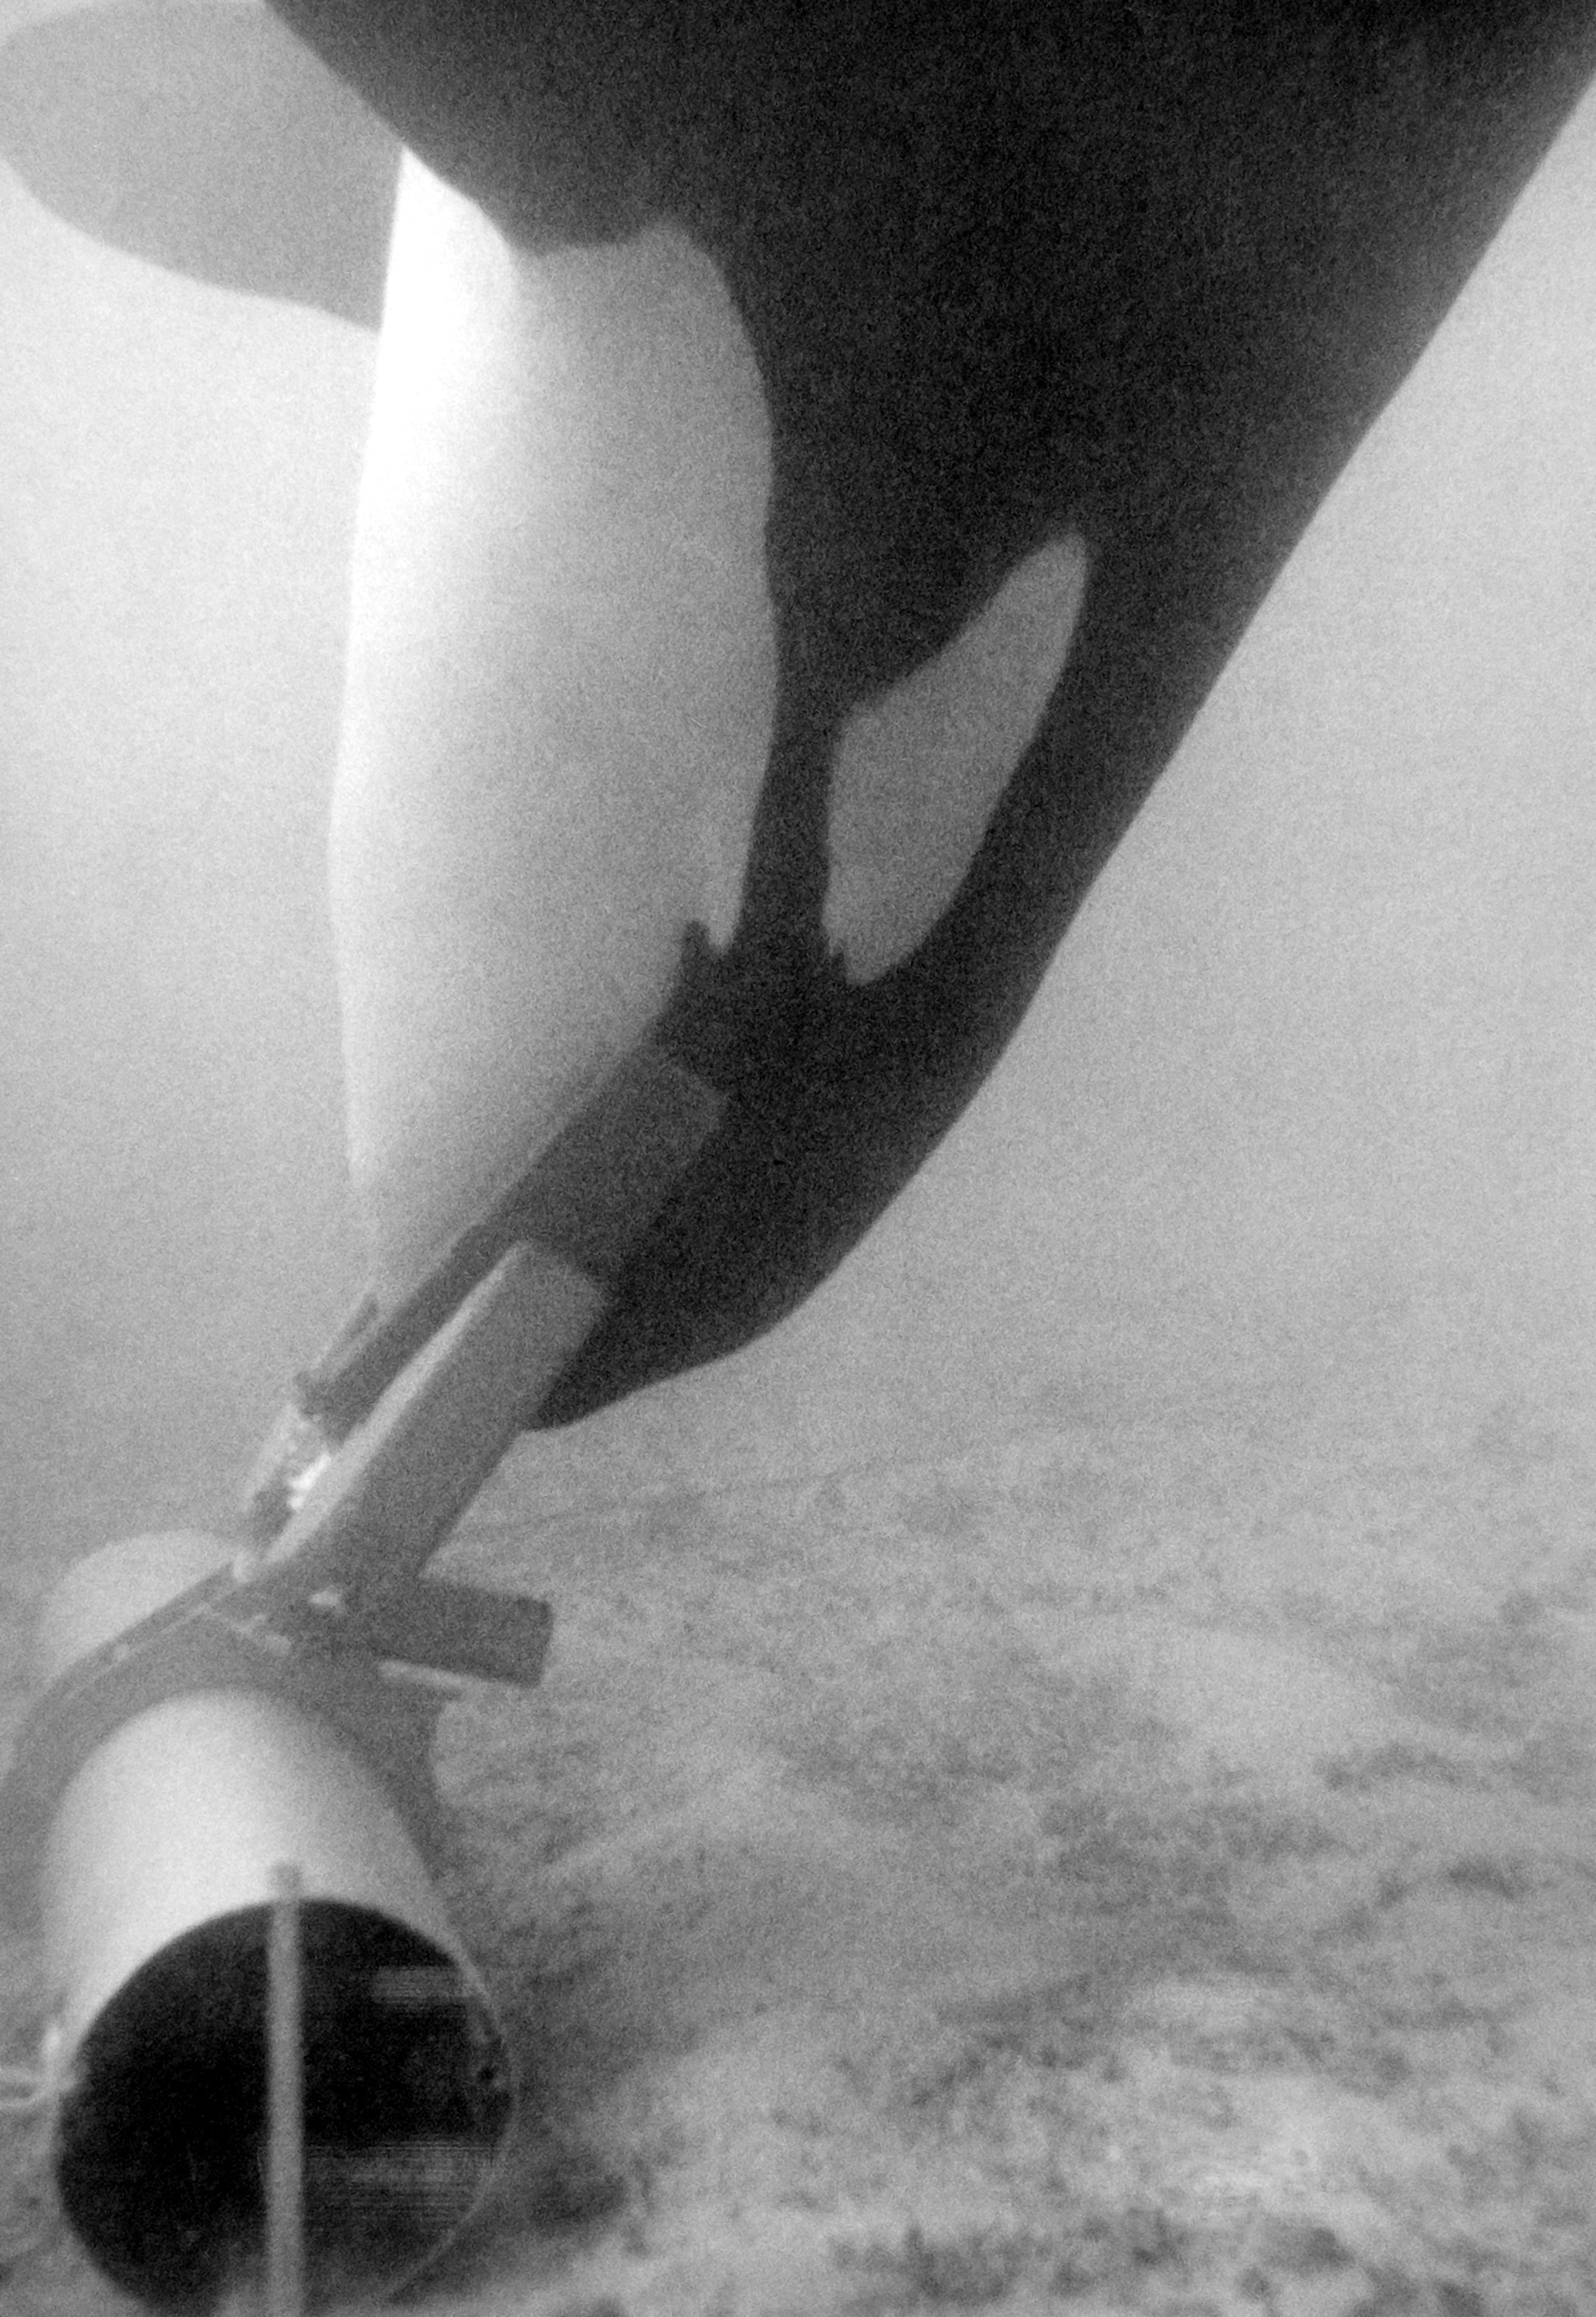 Ahab, a 5,500-pound killer whale, recovers a piece of inert ordnance using an acoustic pinger to guide him during the Deep Ops project. The whale is also equipped with a grabber device and a hydrazine system to allow the object to float easily to the surface.